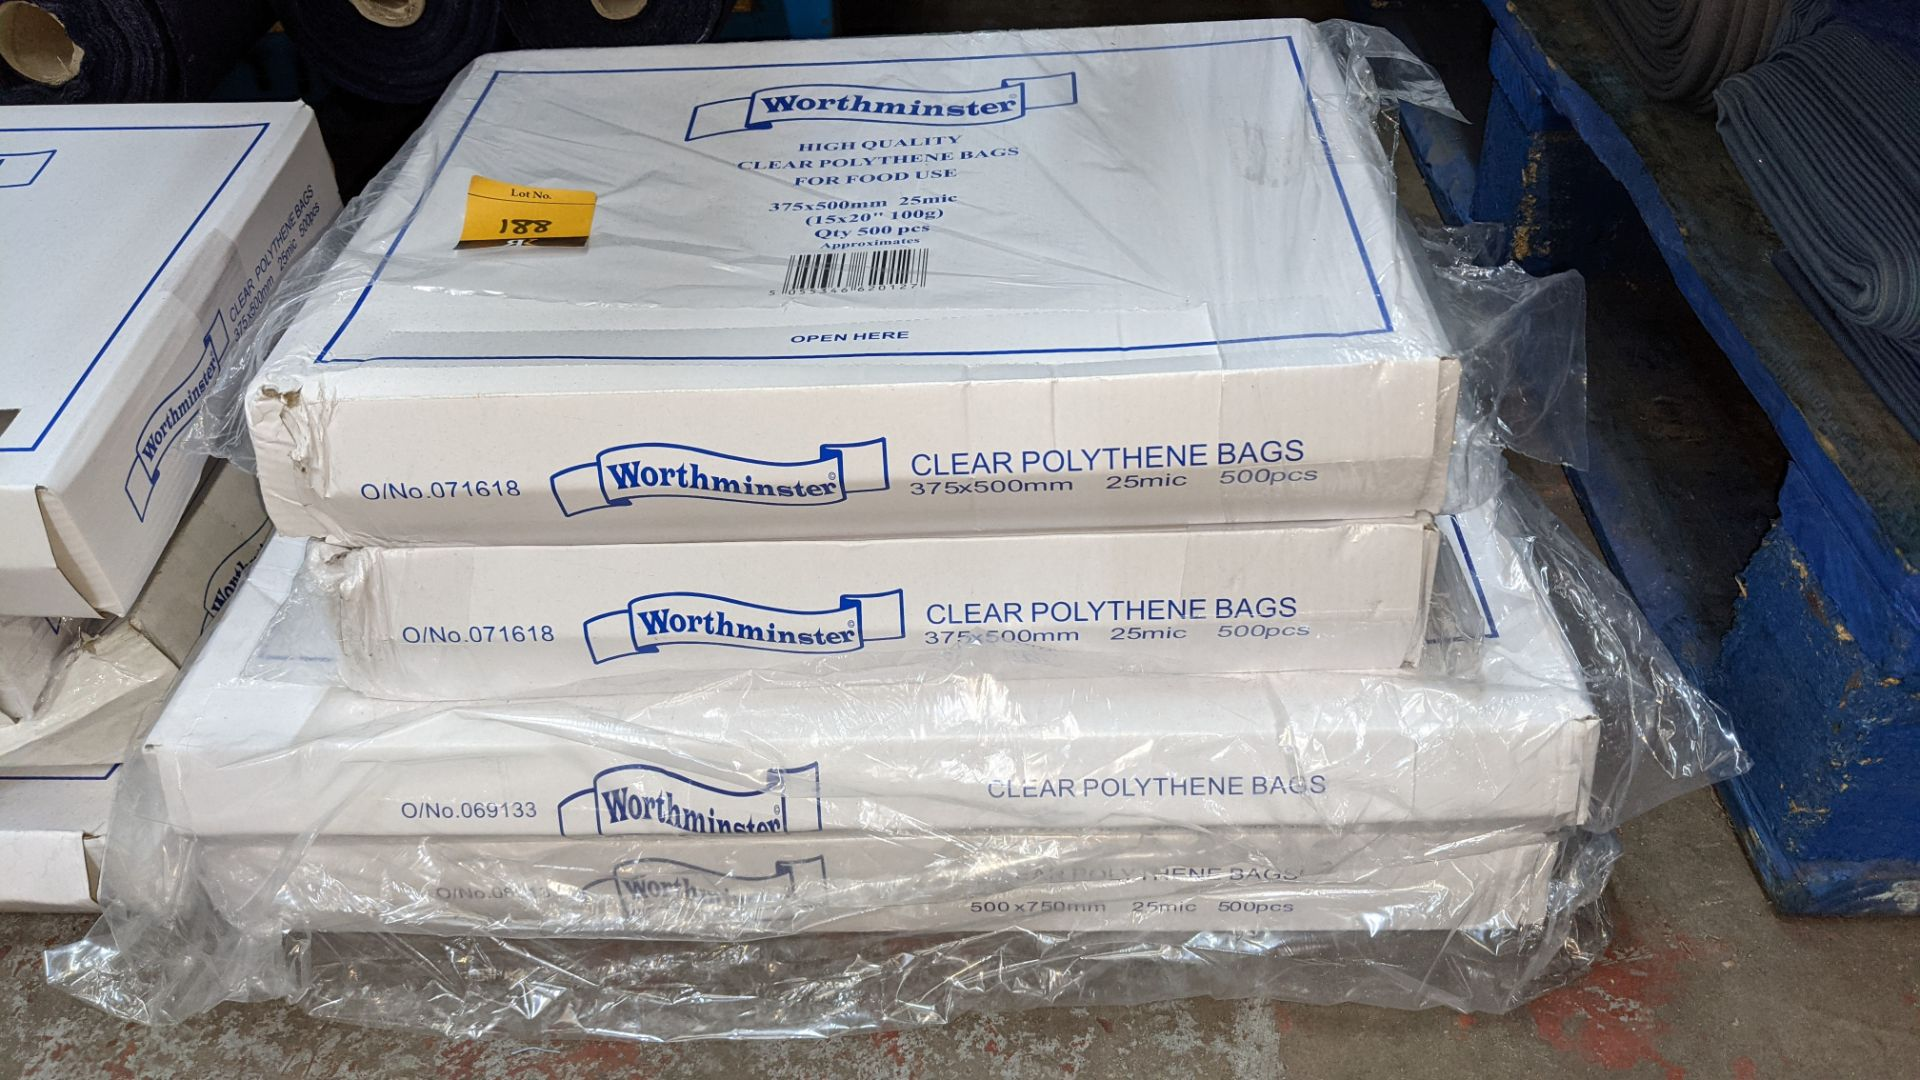 4 boxes of clear food bags by Worthminster - Image 2 of 5